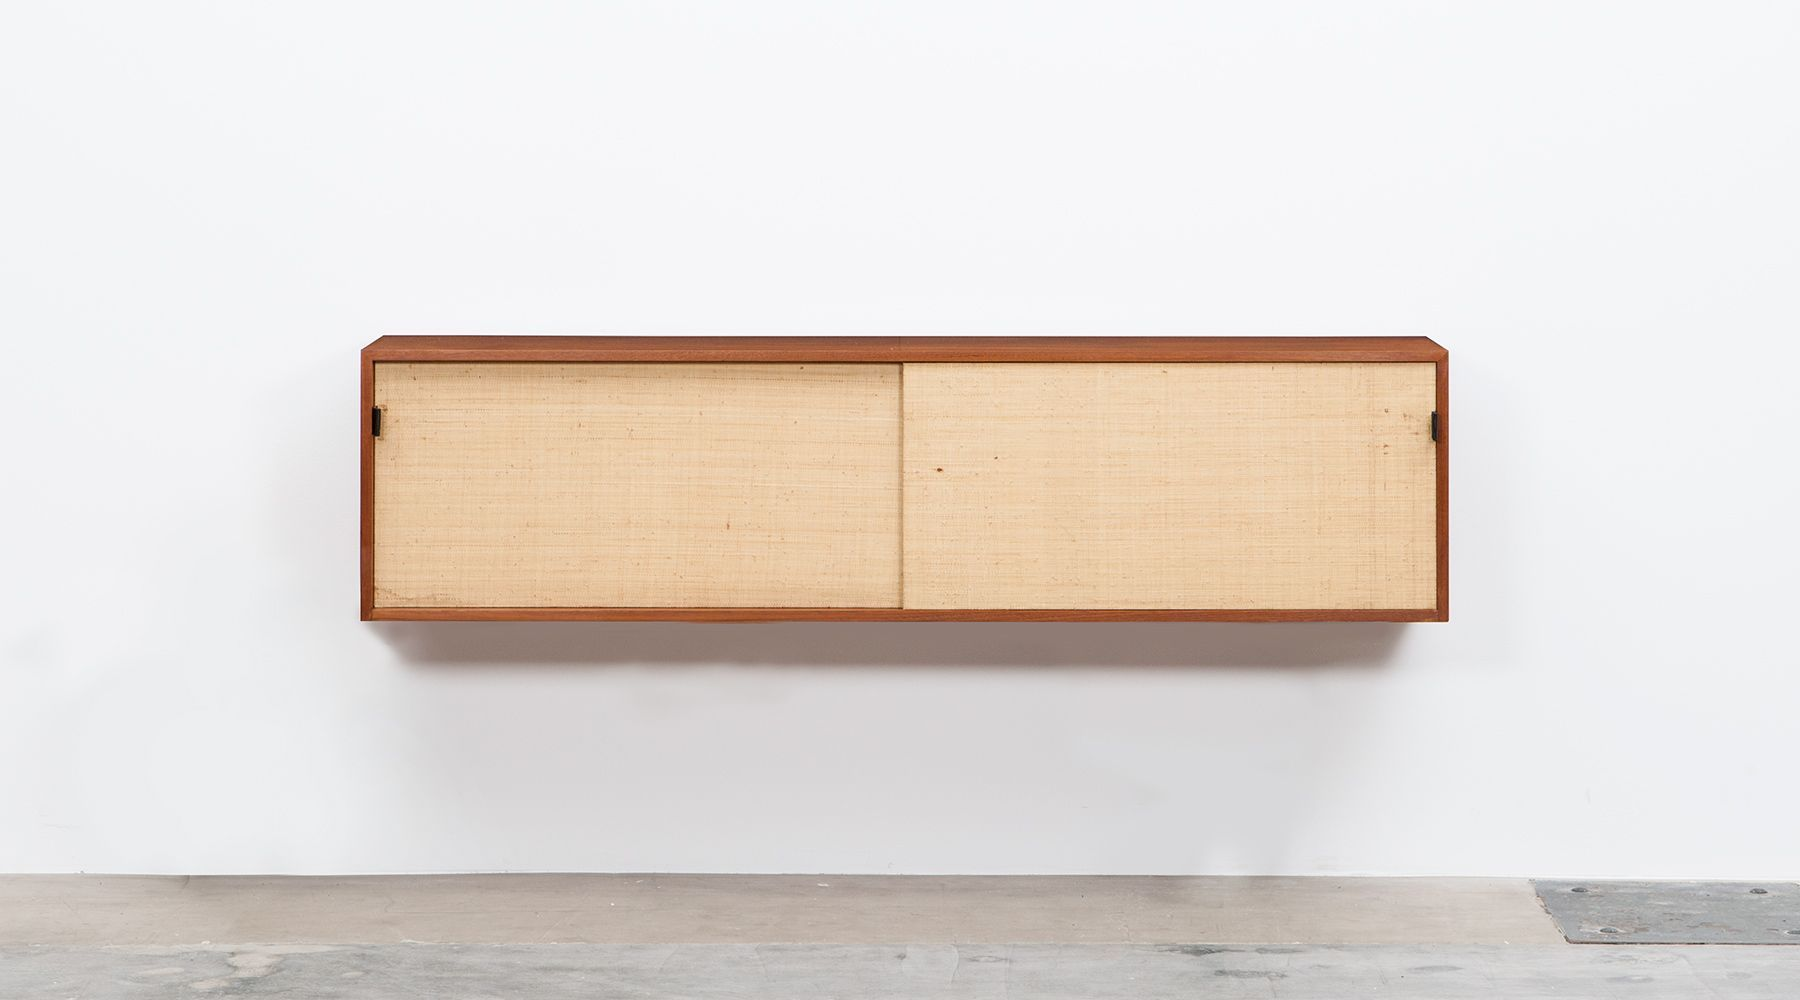 sideboard wall mounted (a)